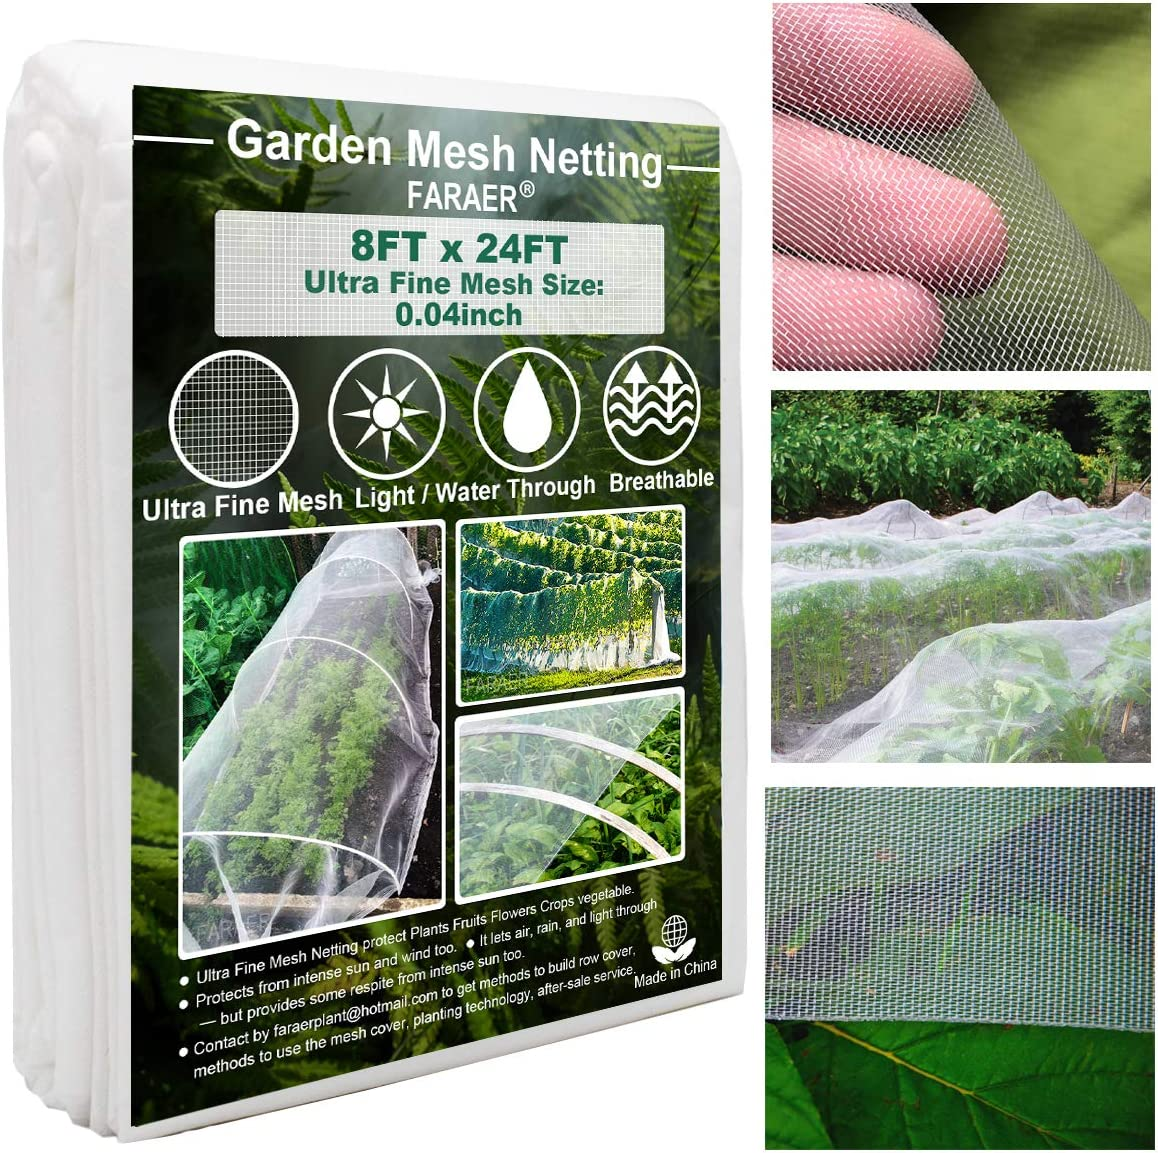 Ultra Fine Garden Mesh Netting, Plant Covers 8'x24' Garden Netting for Protect Vegetable Plants Fruits Flowers Crops Greenhouse Row Cover Protection Mesh Net Covers Patio Gazebo Screen Barrier Net : Patio, Lawn & Garden